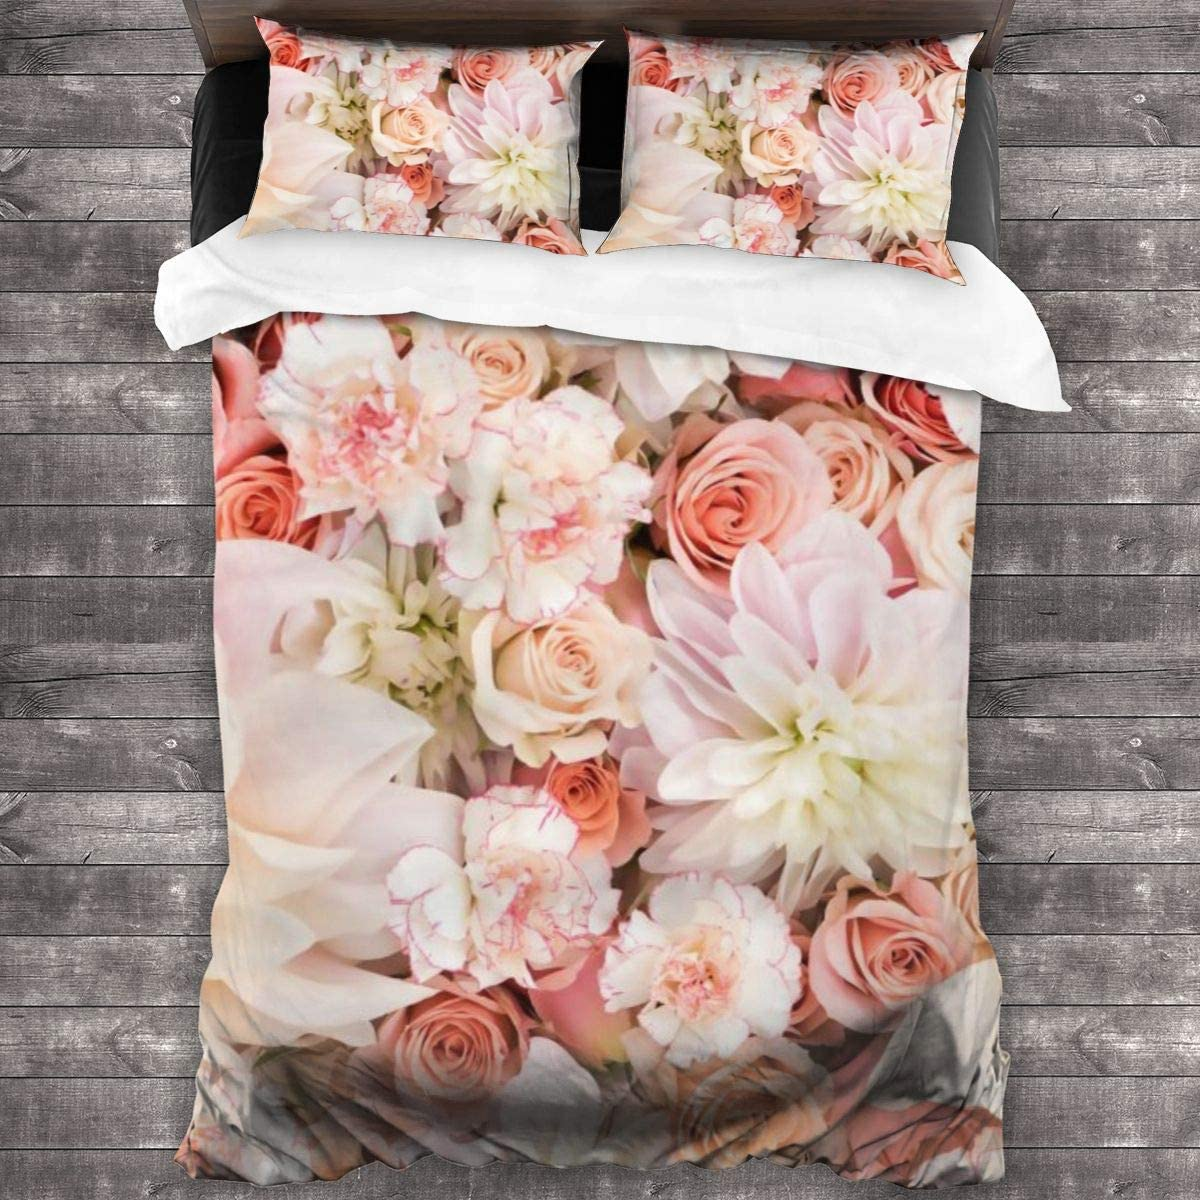 AUISS 3 Piece Bedding Set ! Super beauty product restock quality top! Flower Quilt Max 78% OFF Cover Bedroom Comforters